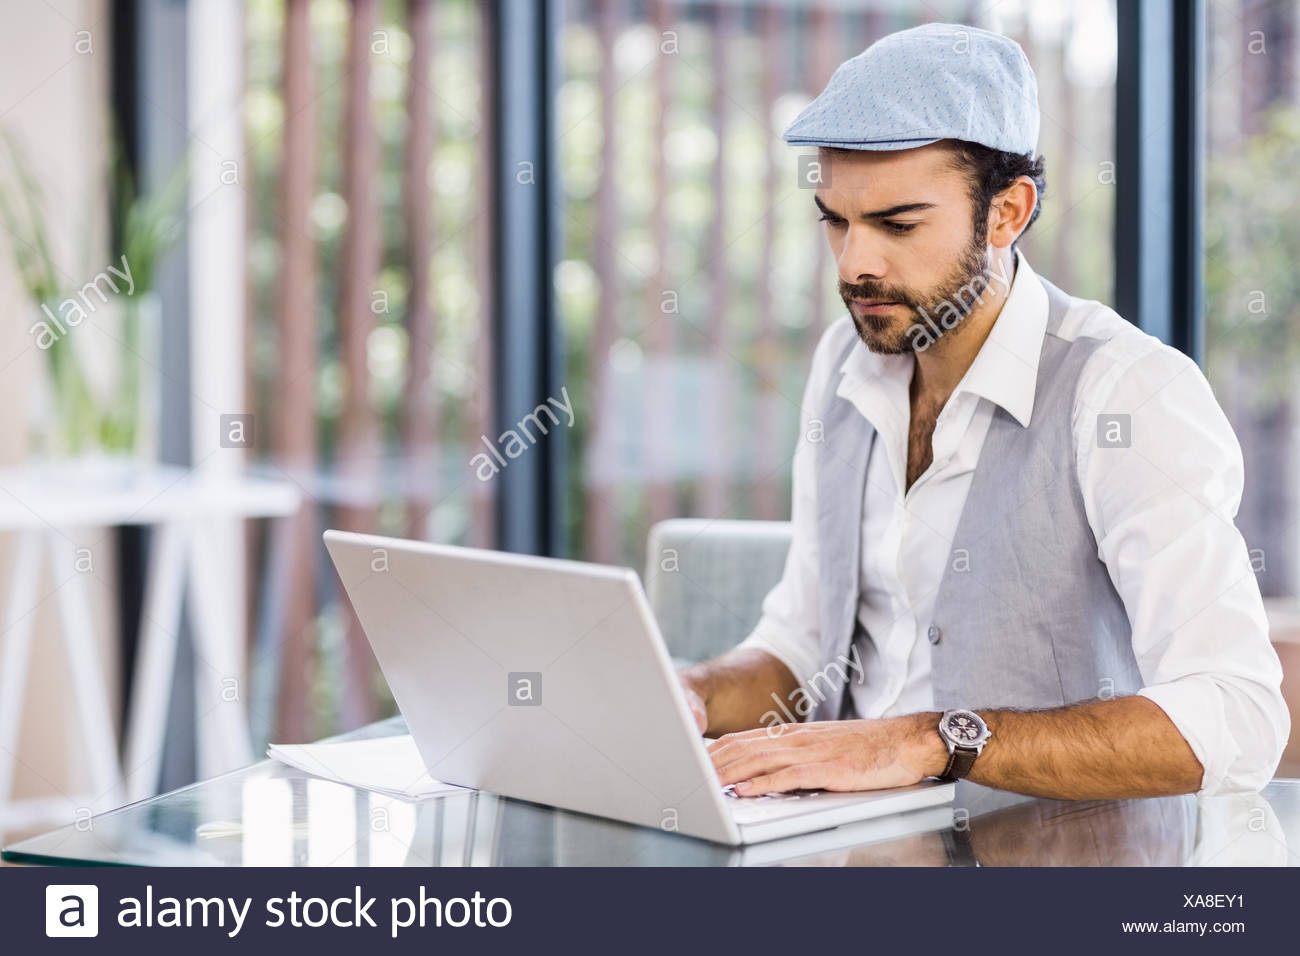 Focused man using laptop - Stock Image